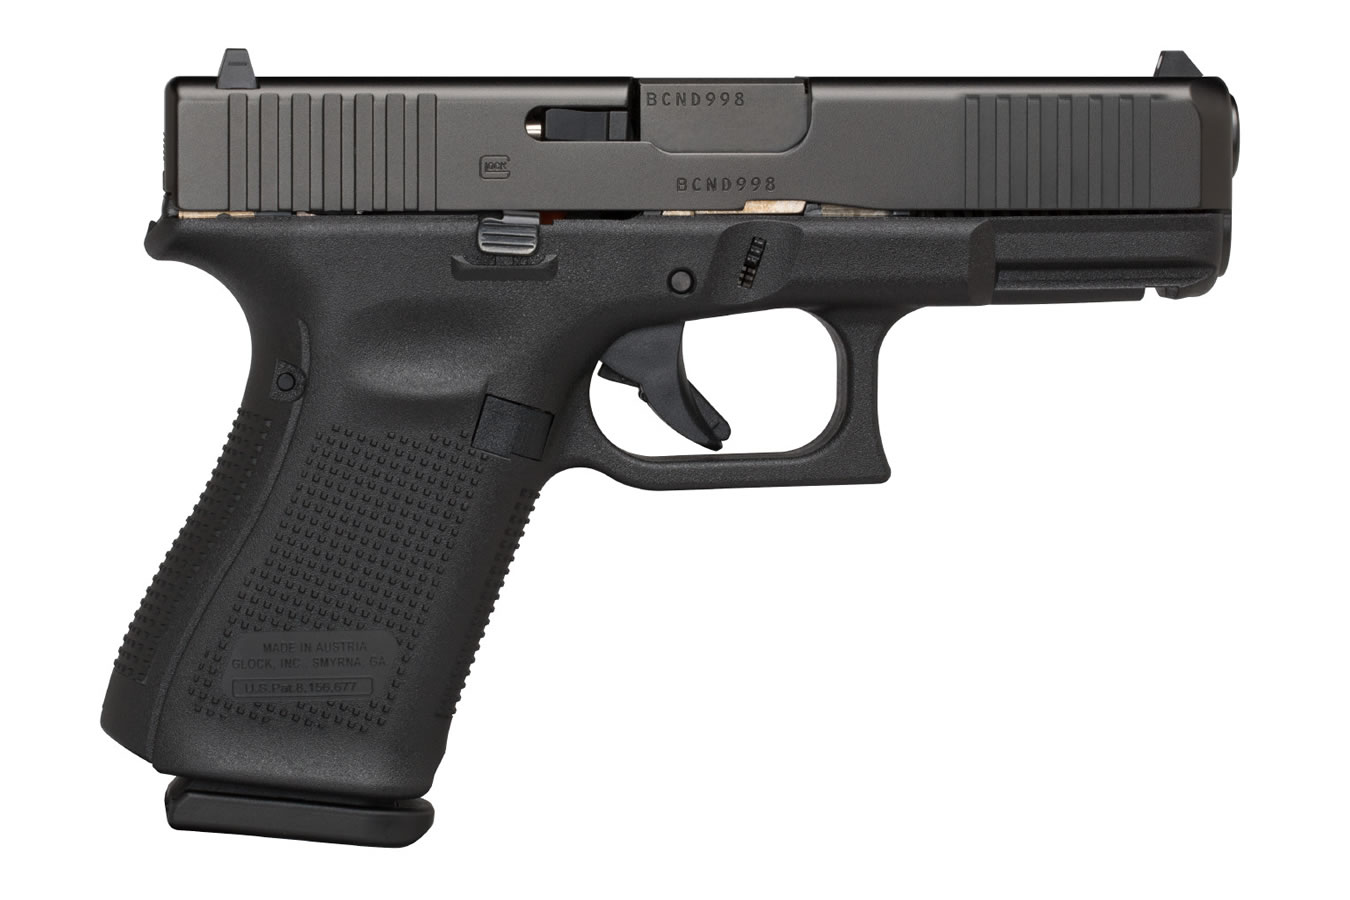 19 GEN5 9MM PISTOL WITH FRONT SERRATIONS AND AMERIGLO BOLD NIGHT SIGHTS (LE)